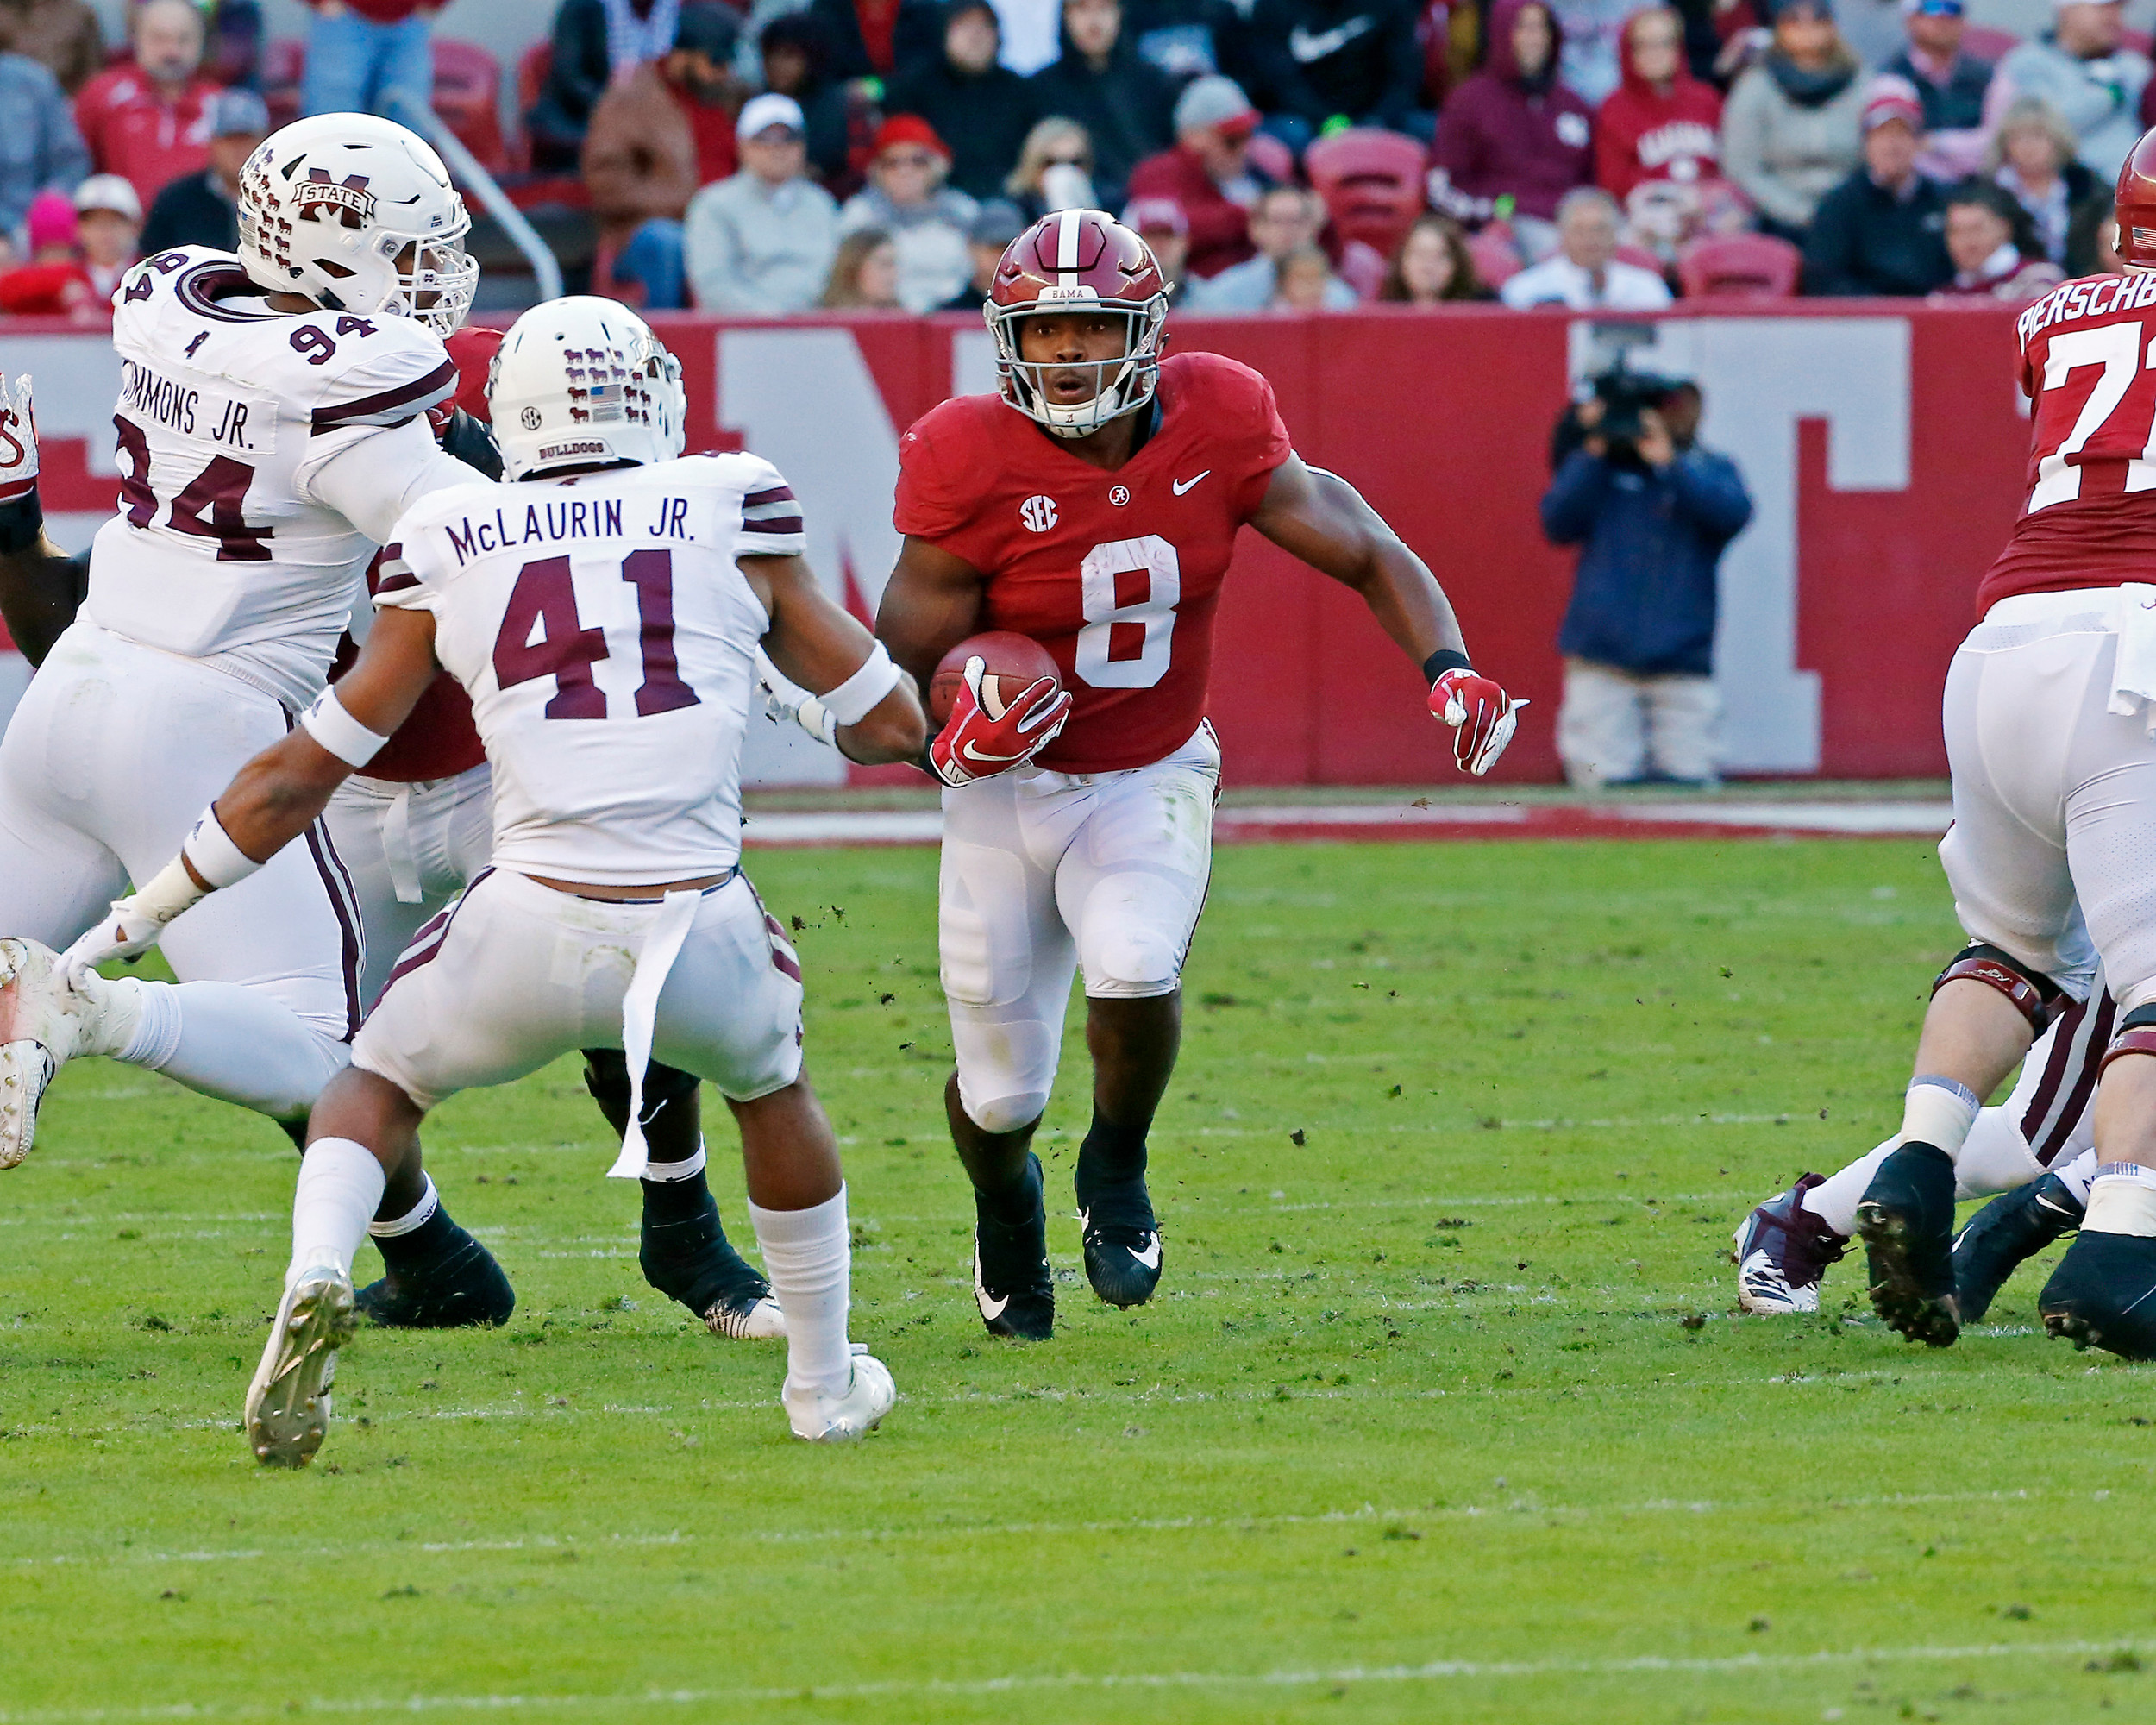 Alabama Crimson Tide running back Josh Jacobs (8) heads straight for Mississippi State Bulldogs safety Mark McLaurin (41) during the game between Mississippi State and the University of Alabama at Bryant-Denny Stadium in Tuscaloosa, Al. Credit: Jason Clark / Daily Mountain Eagle